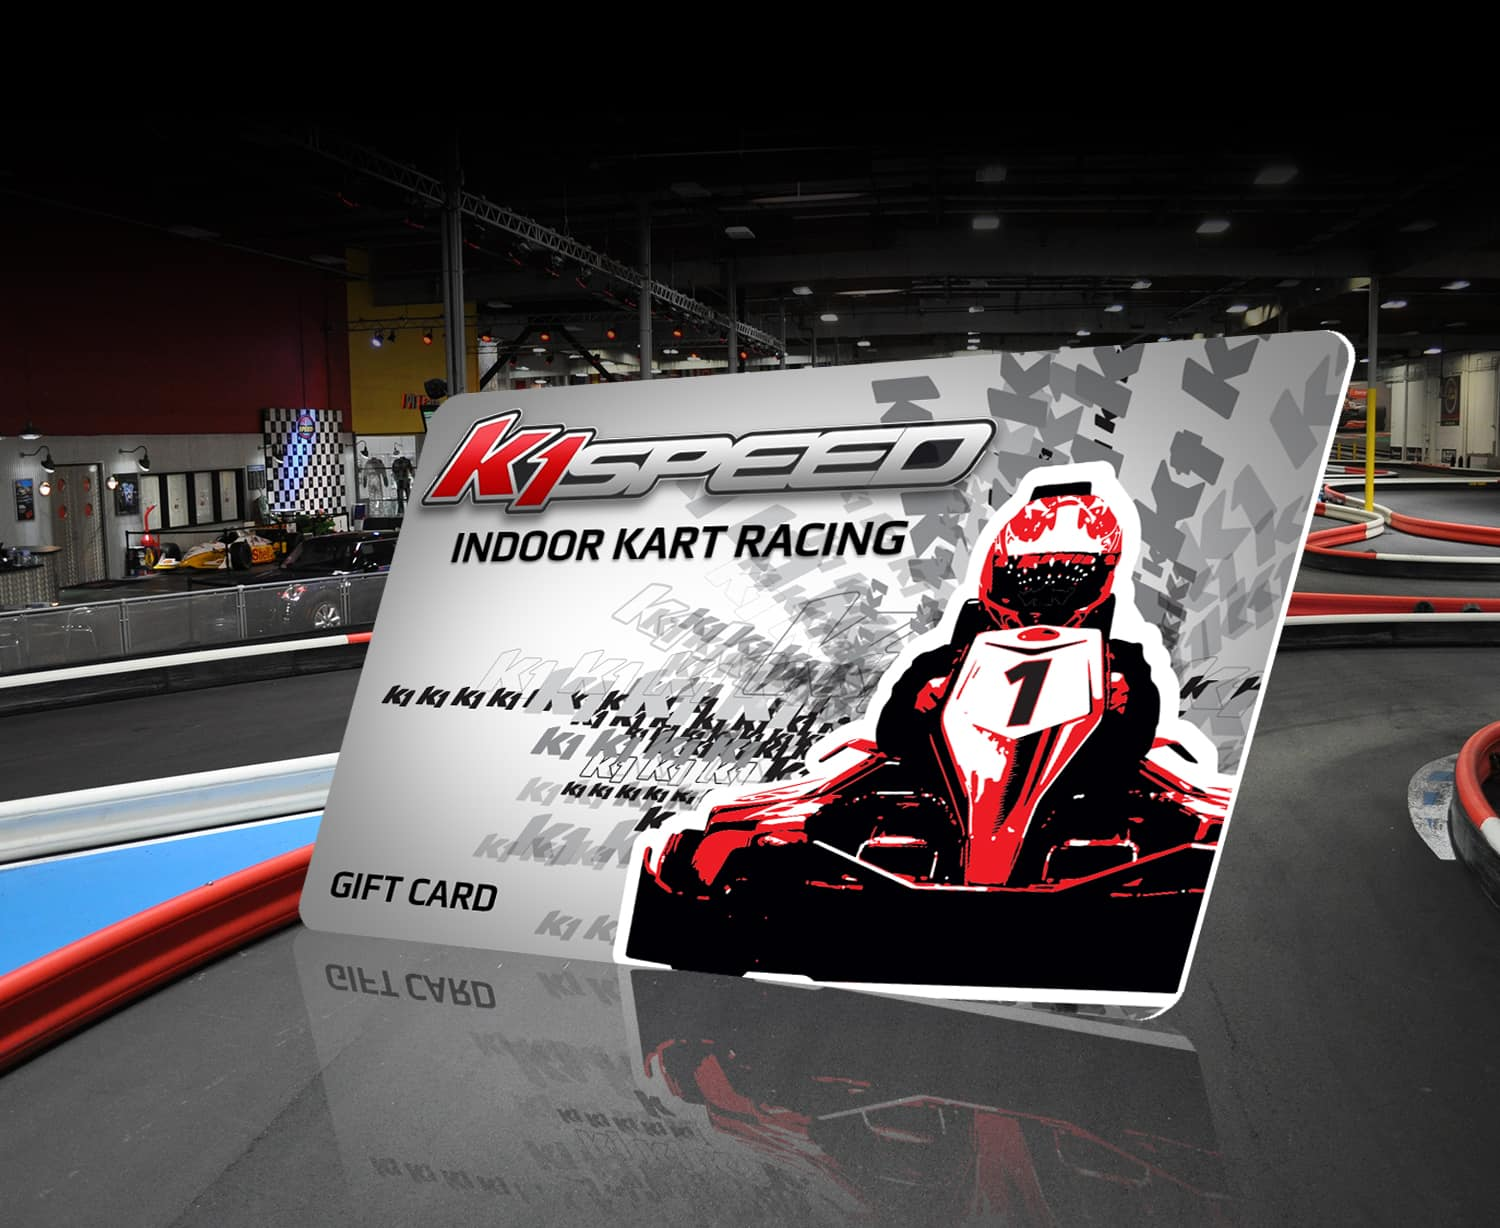 Read Our Tips How To Get The Most From Your K1 Speed Gift